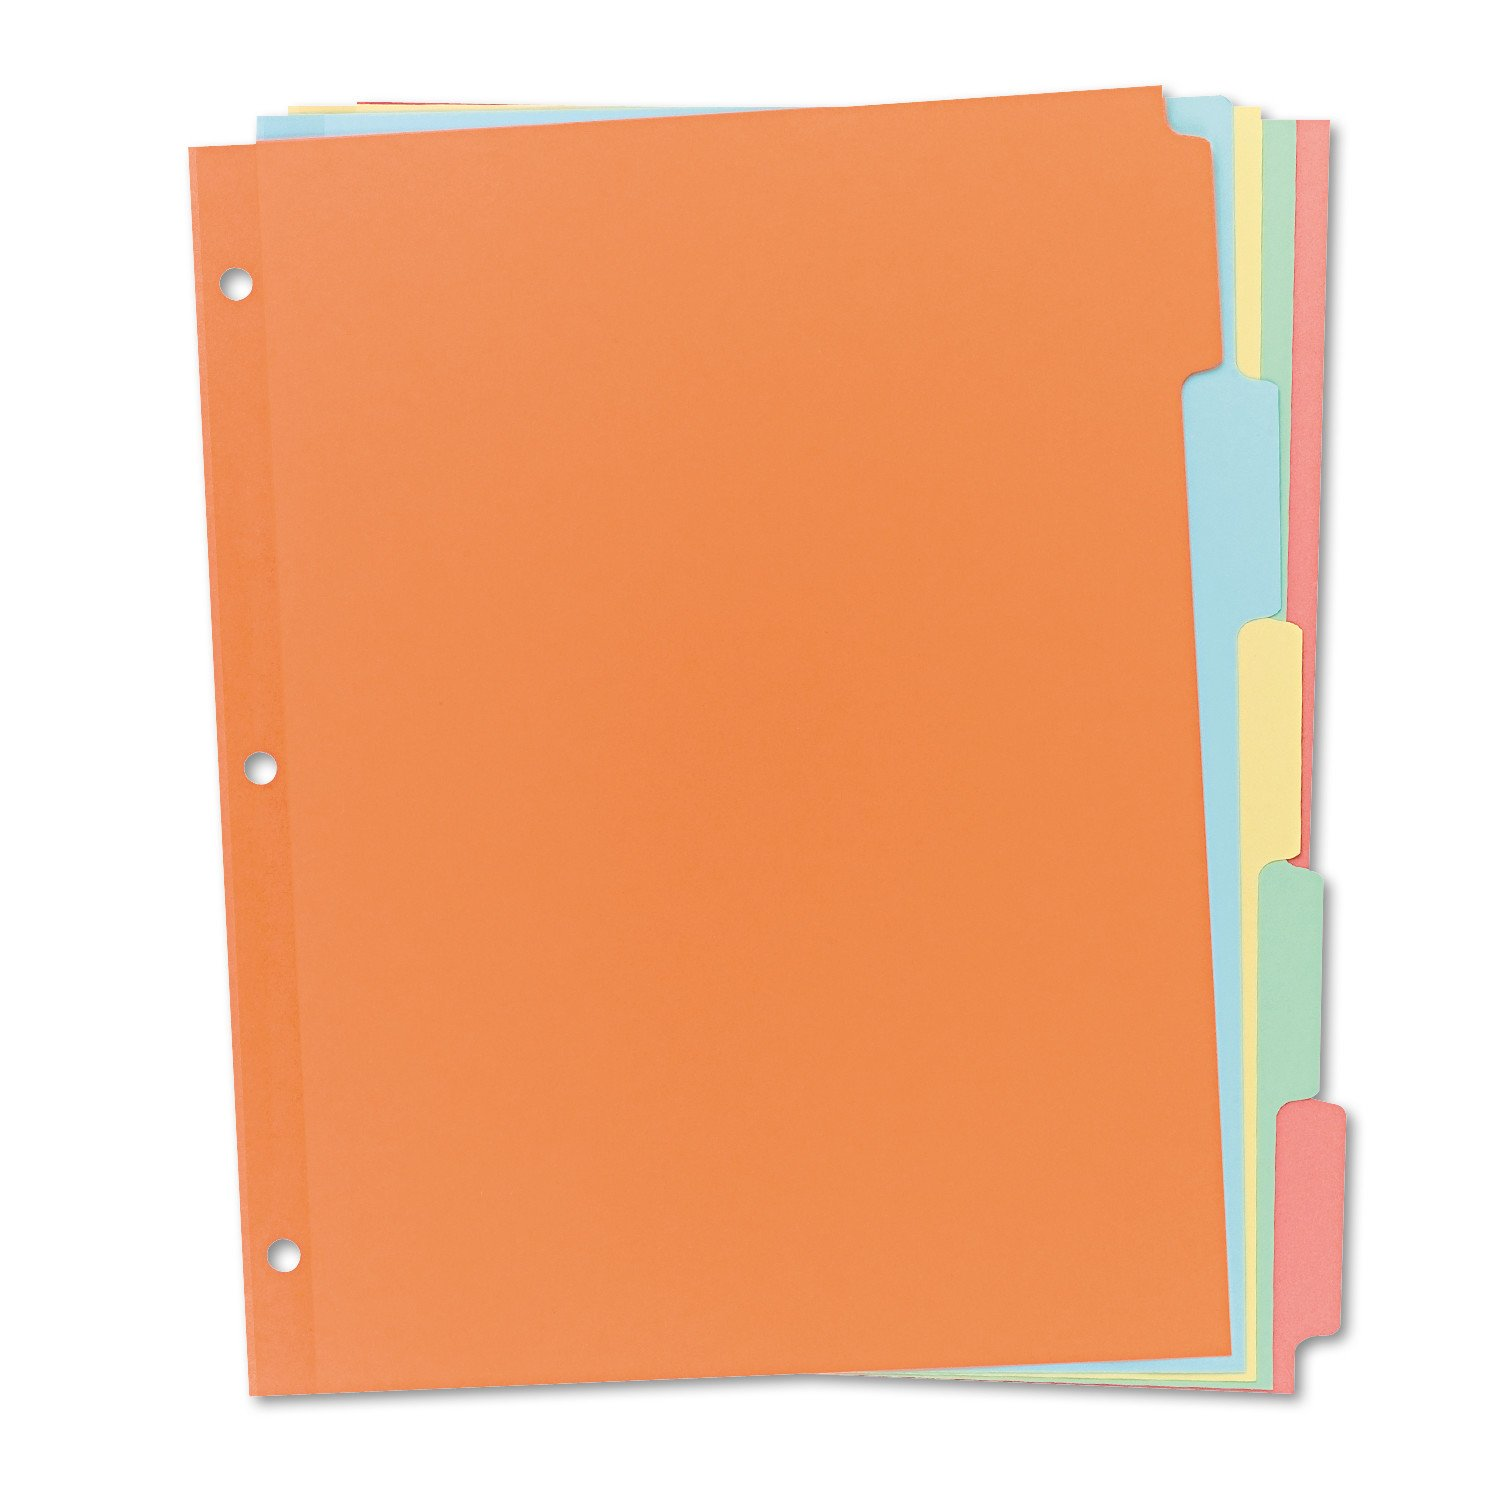 Avery 11508 Write & Erase Plain-Tab Paper Dividers, 5-Tab, Letter, Multicolor (Box of 36 Sets) by AVERY